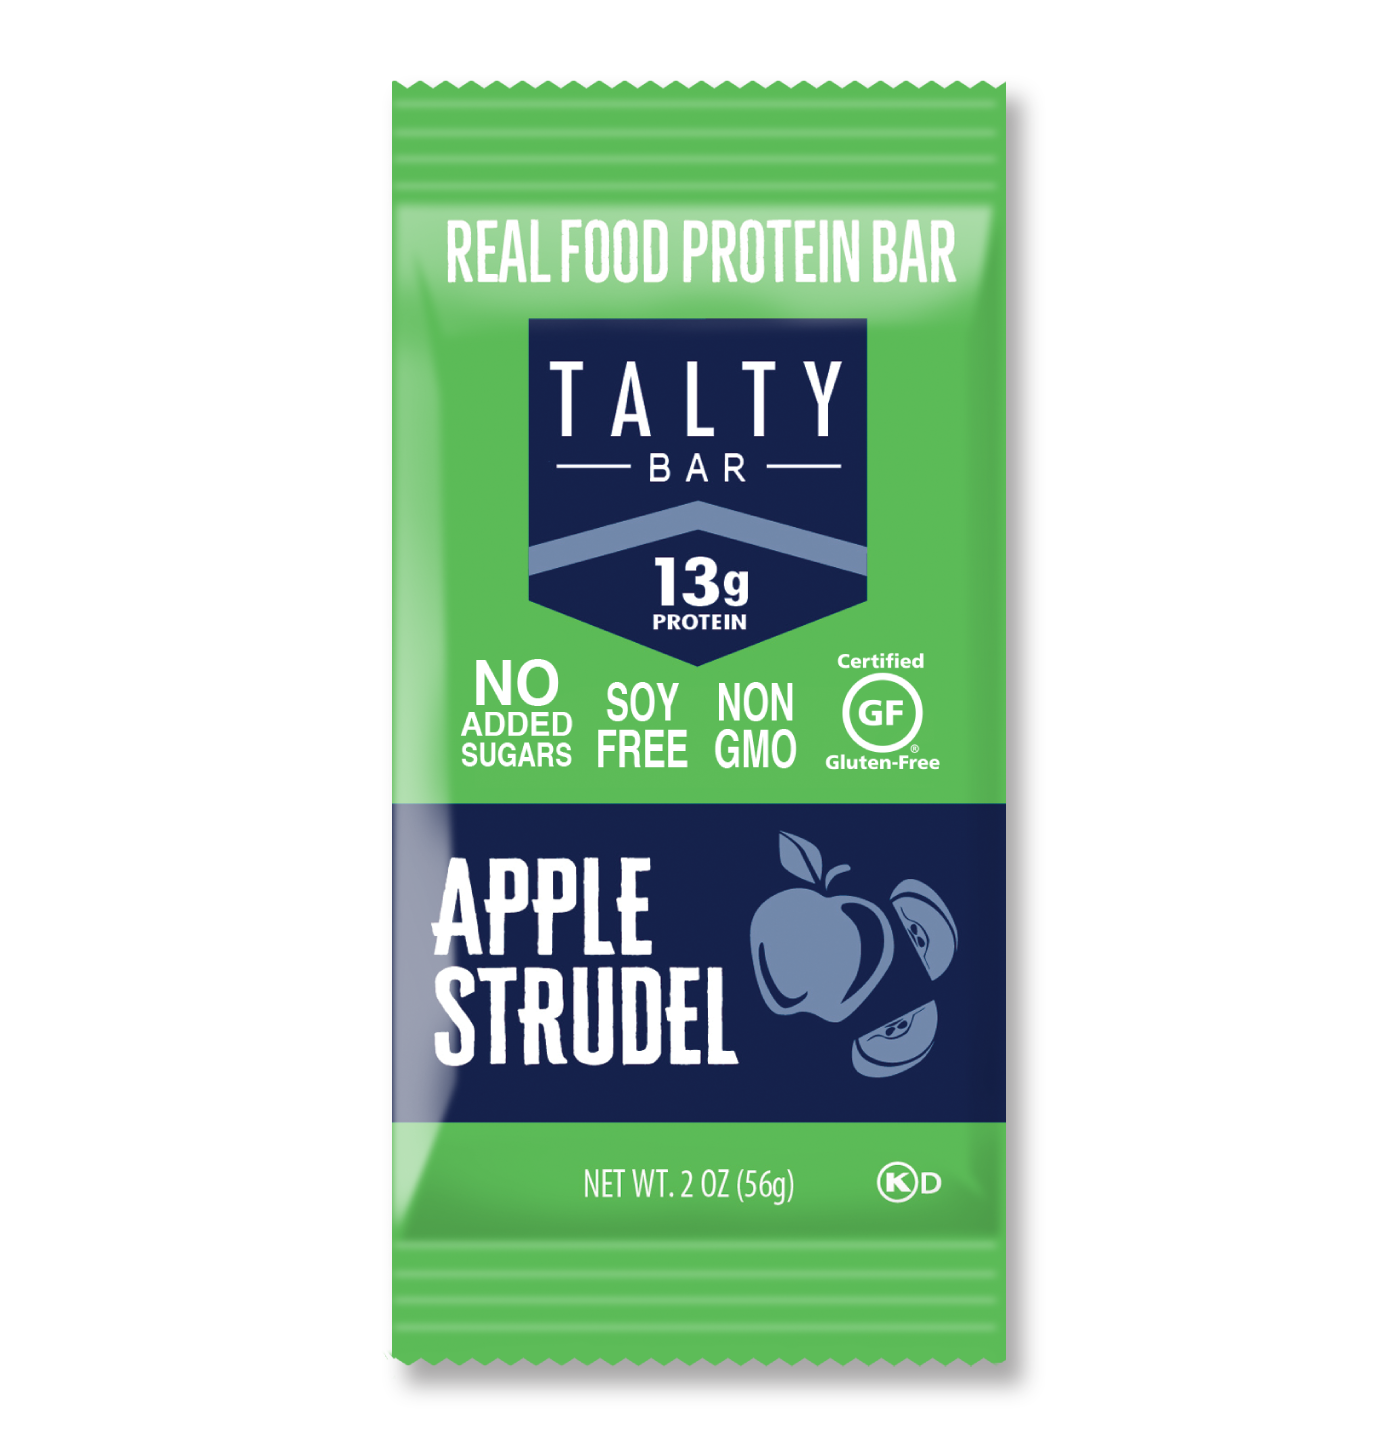 Apple Strudel Box